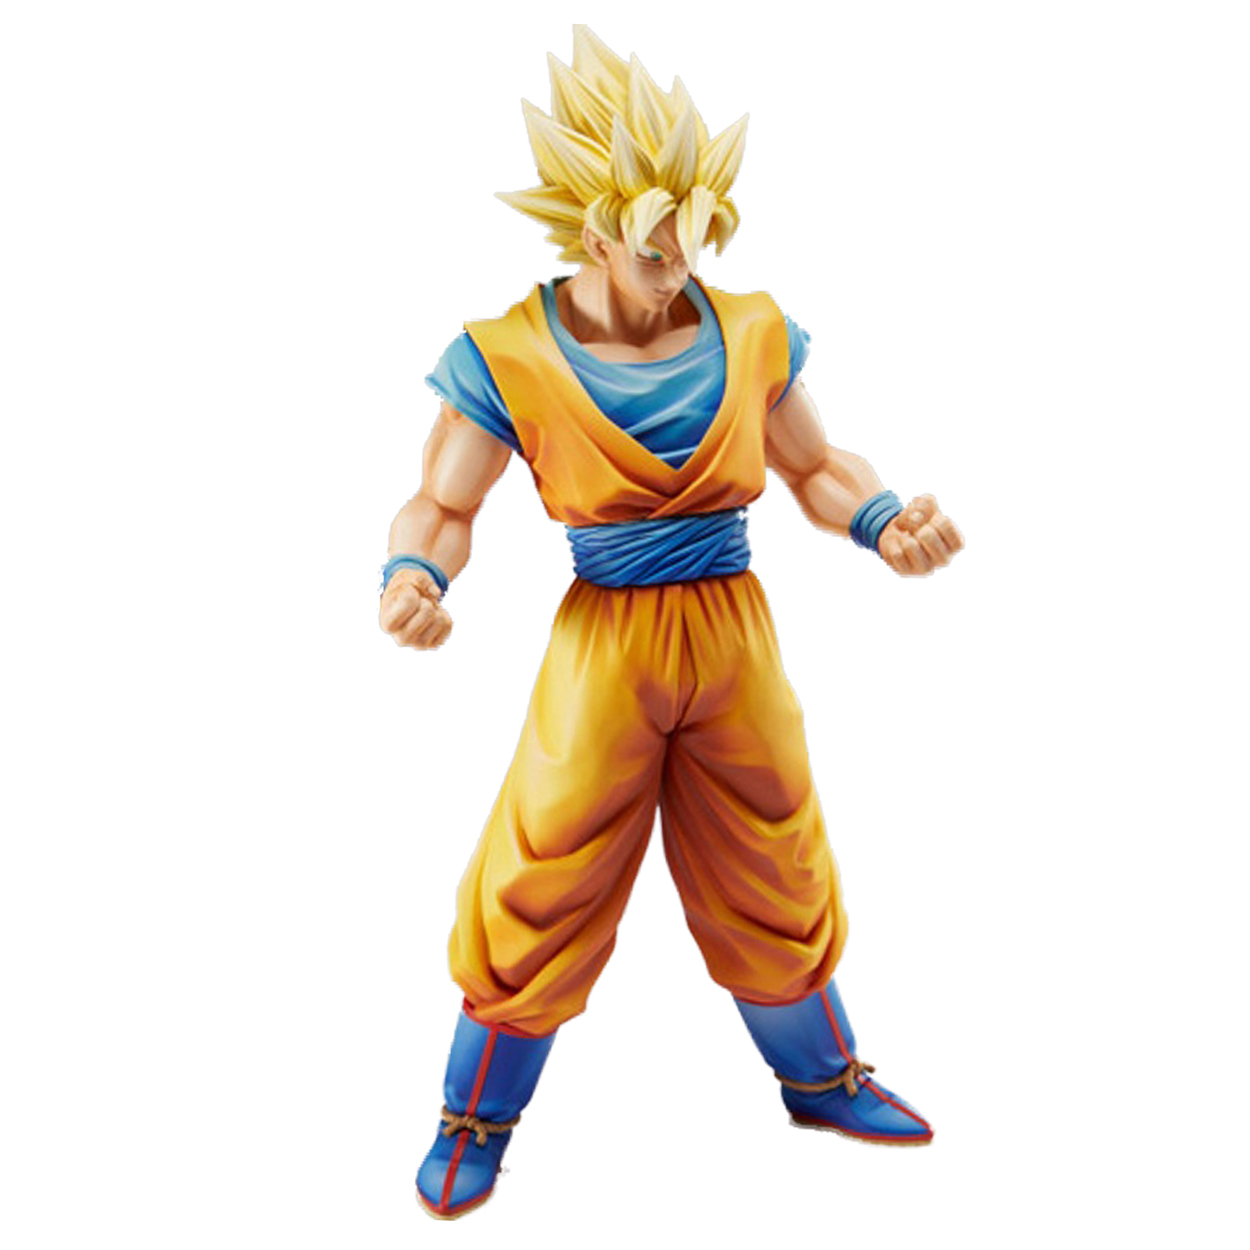 Chanycore 23CM Anime Action Figure Black MSP BIG SIZE Son Goku Dragon Ball Z Figurines Fashion Cool Boy PVC Action Figure<br>